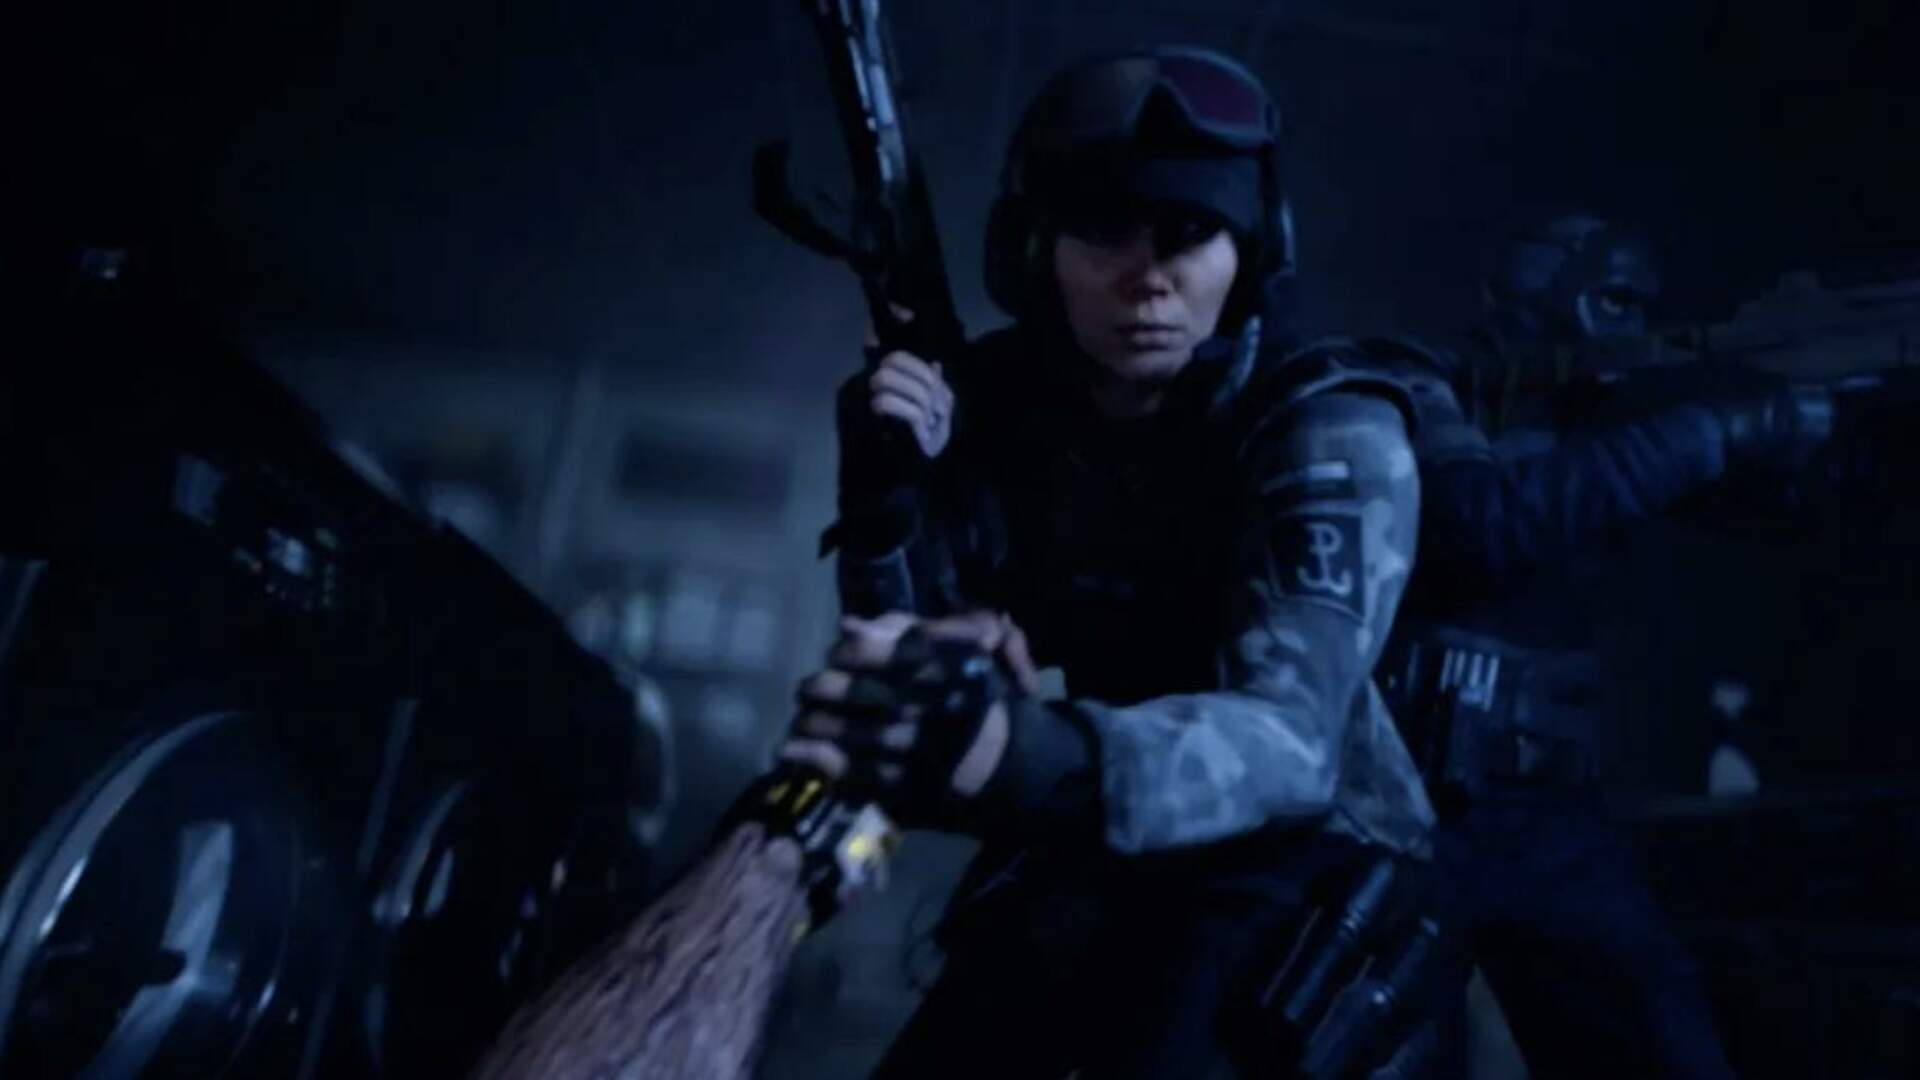 Rainbow Six Quarantine Release Date, Trailer, Gameplay - Everything We Know